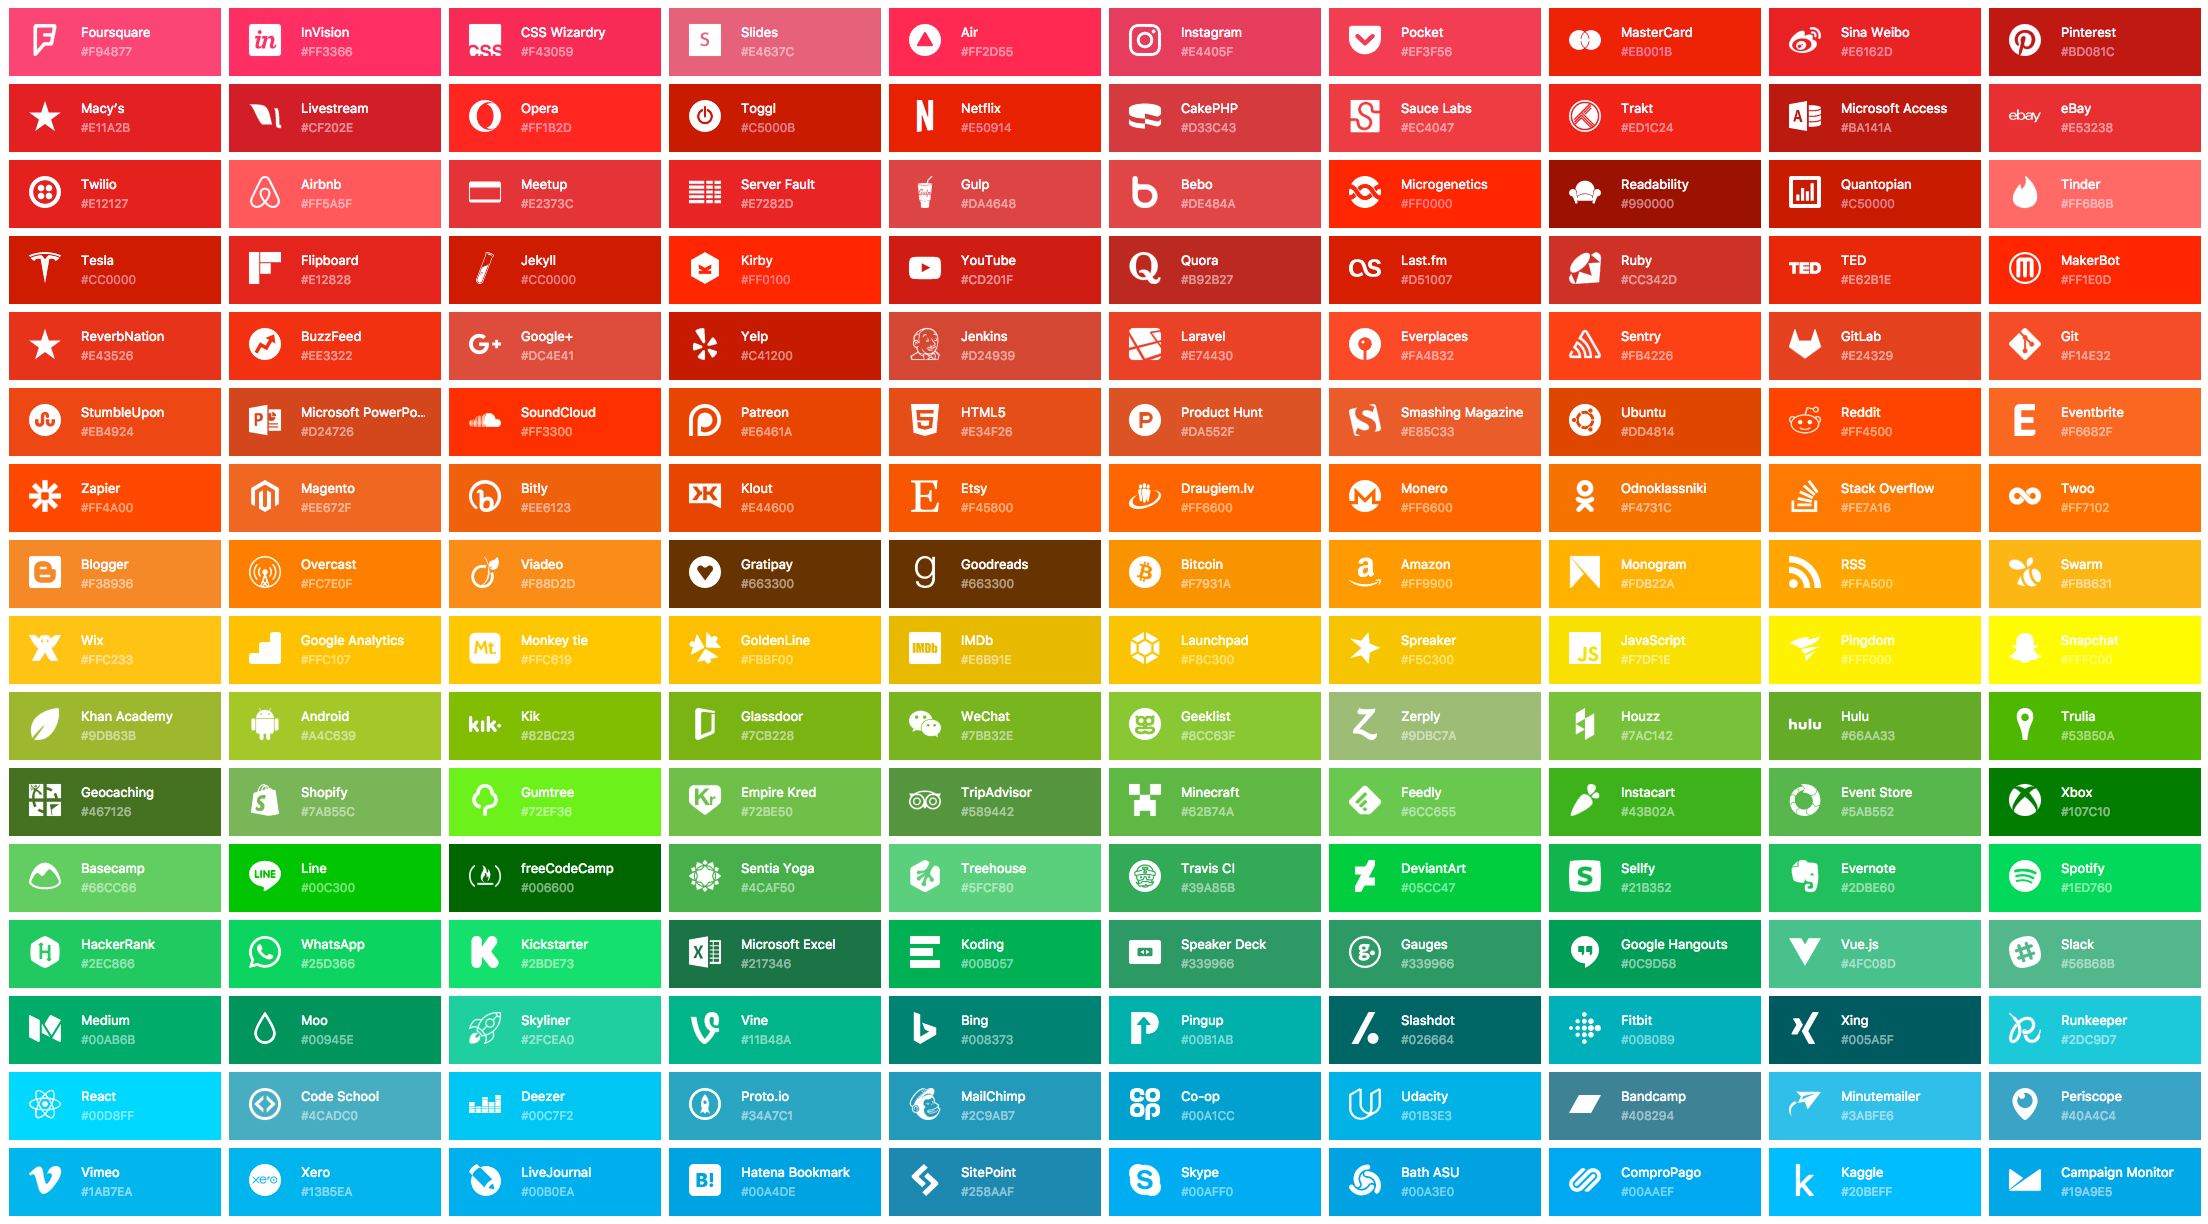 SVG icons for popular brands, maintained by Dan Leech